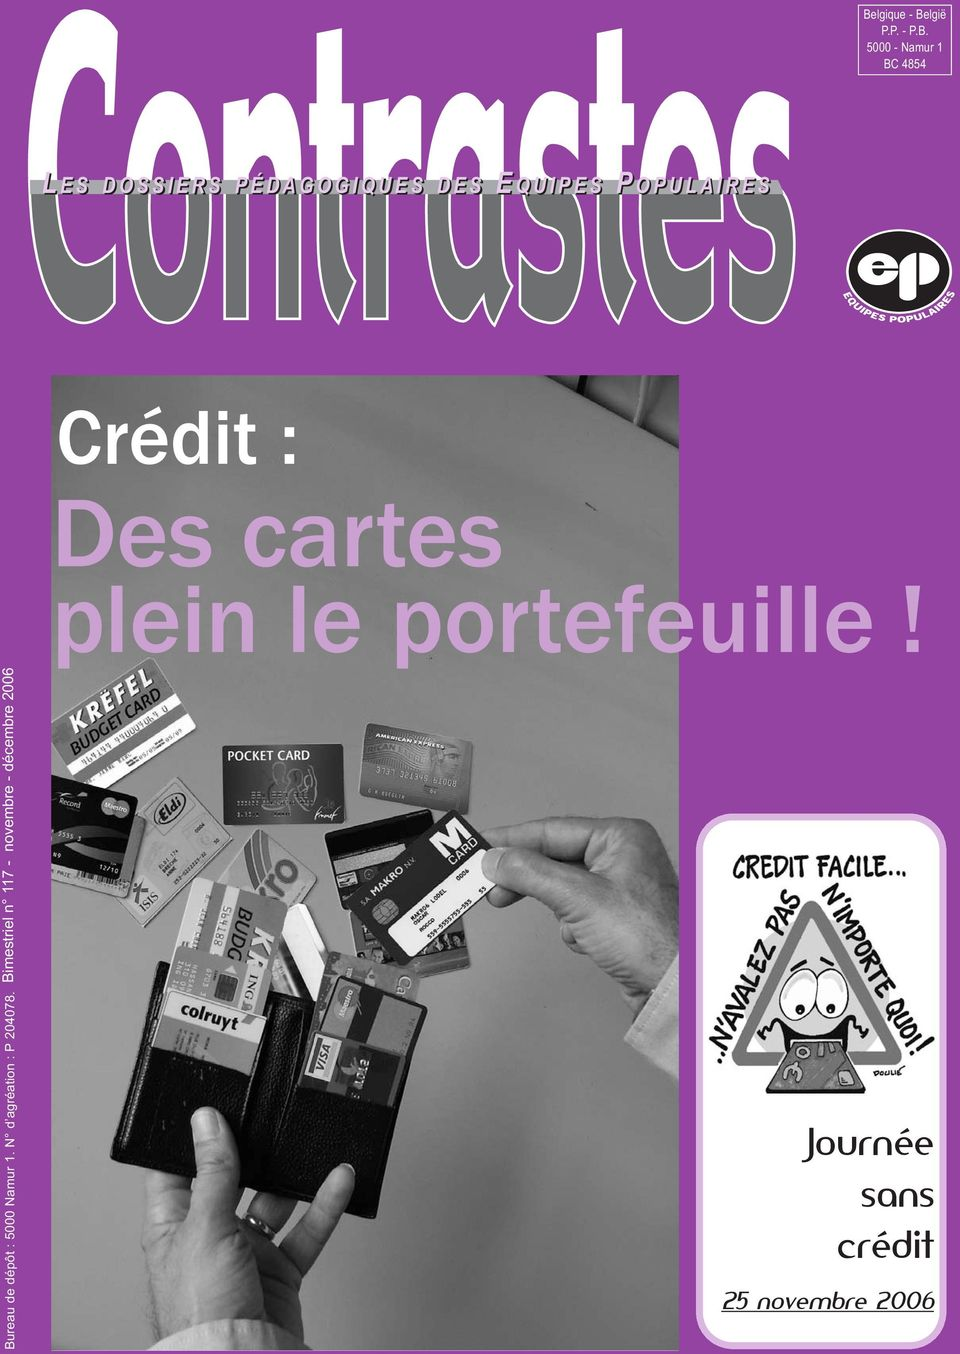 portefeuille!